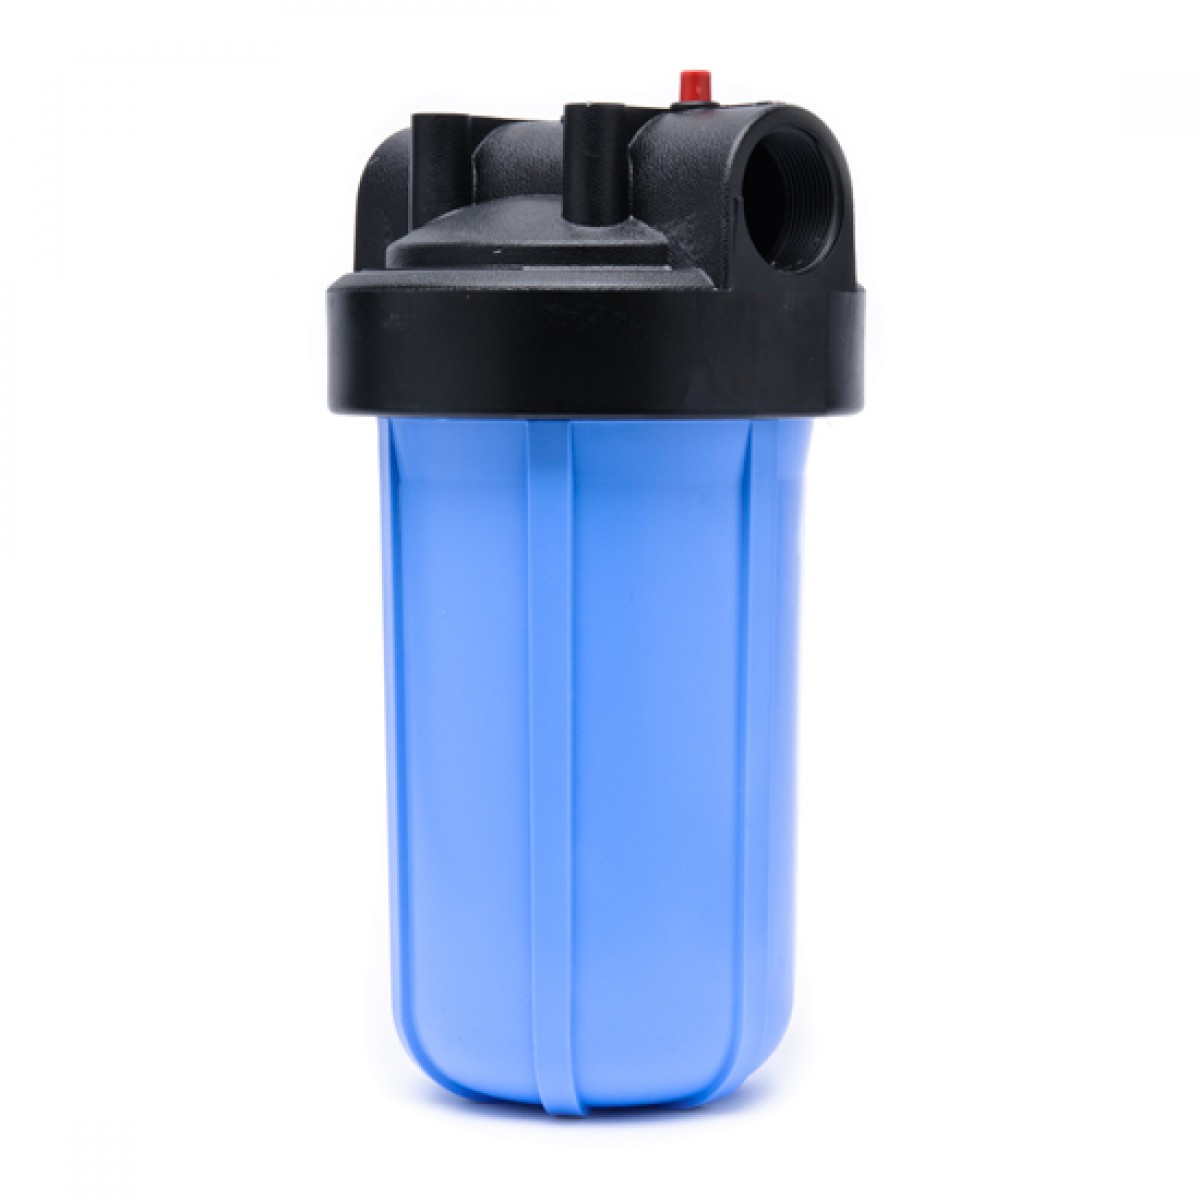 Whole House Filter Hd 950 15 In Whole House Water Filter System